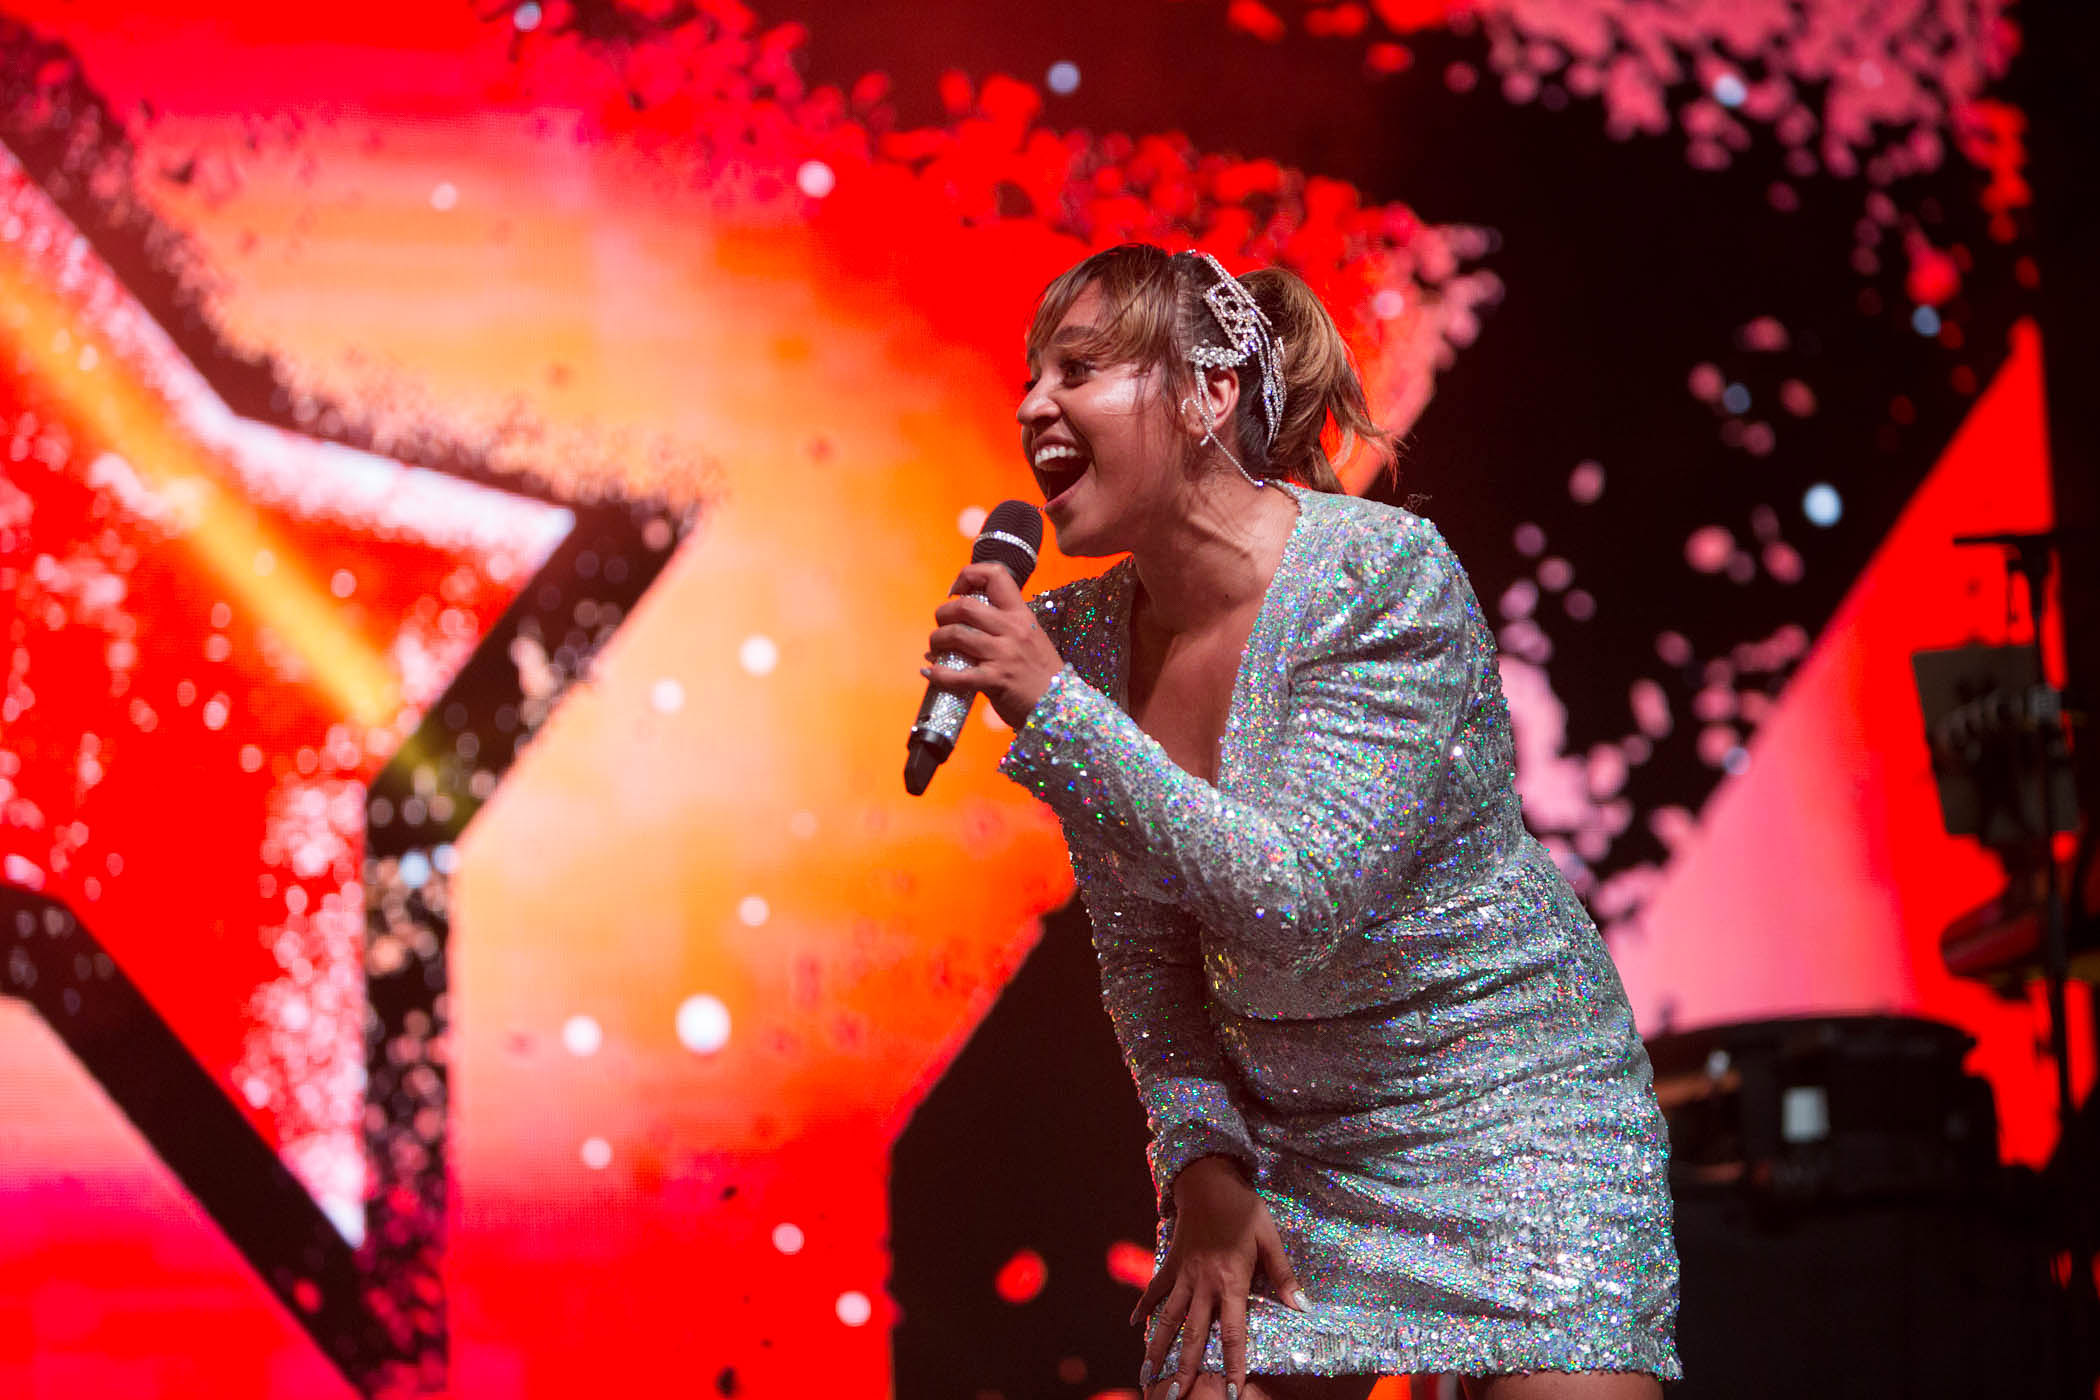 Jessica Mauboy performing at the National Indigenous Music Awards (NIMA) 2019 in Darwin